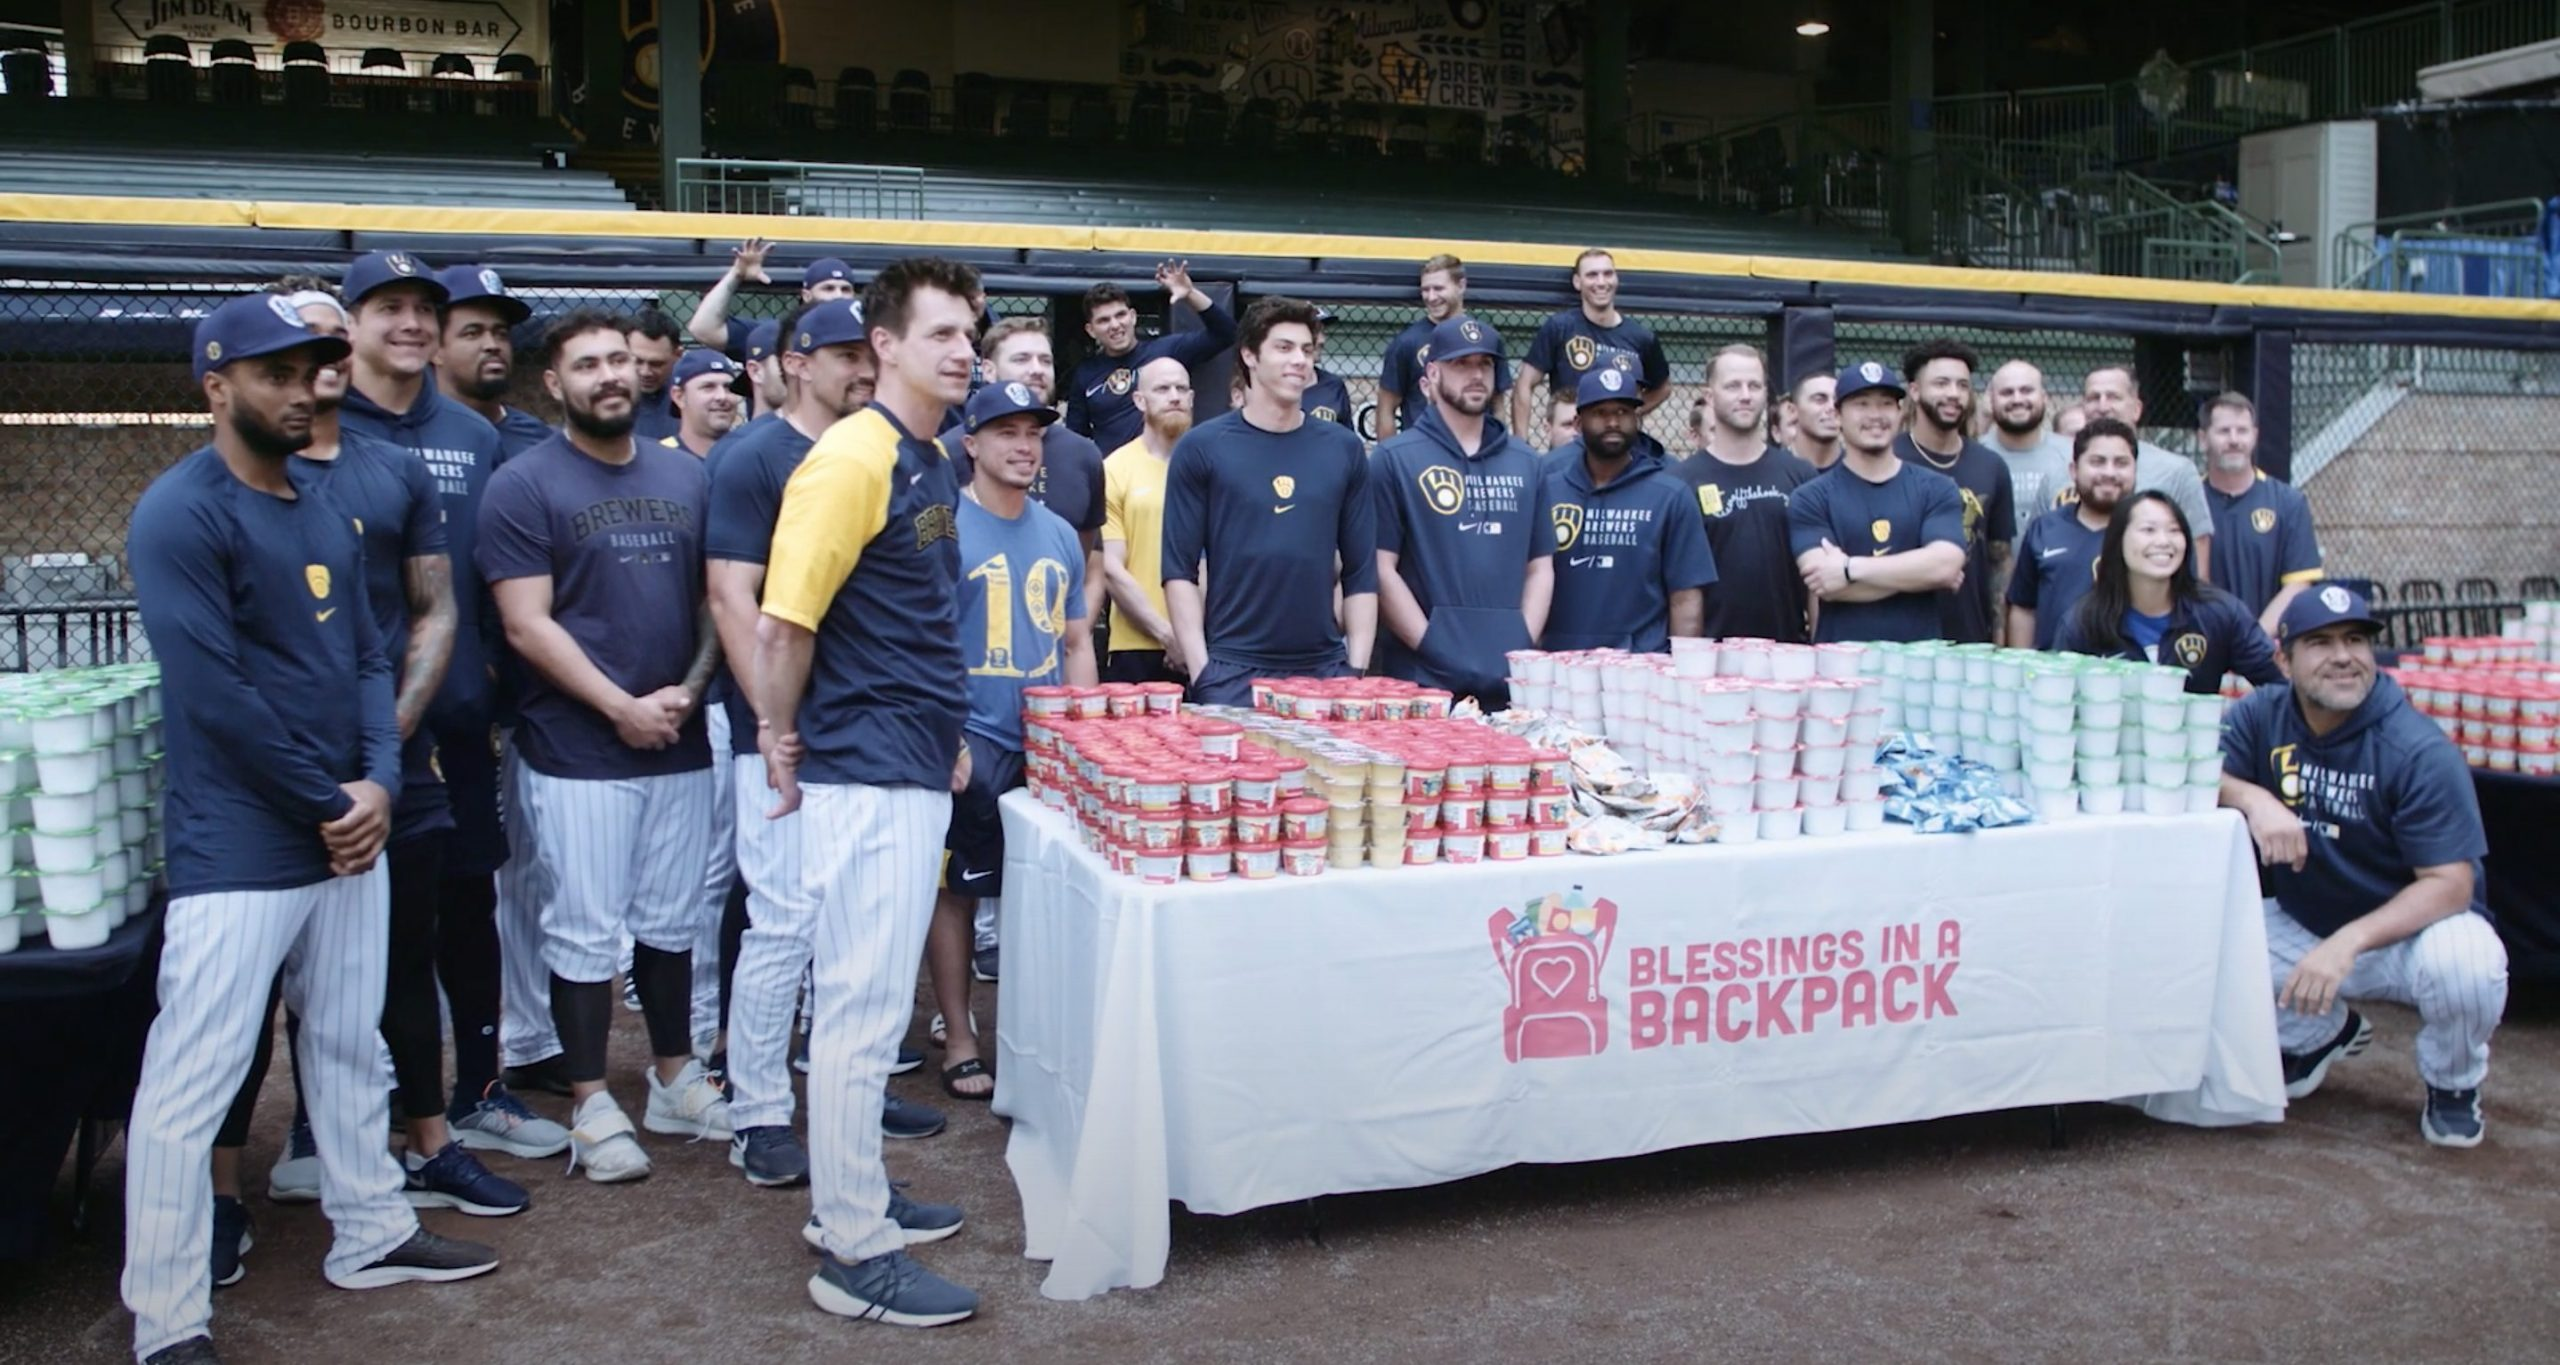 The Milwaukee Brewers and Blessings in a Backpack team up to fight childhood hunger!